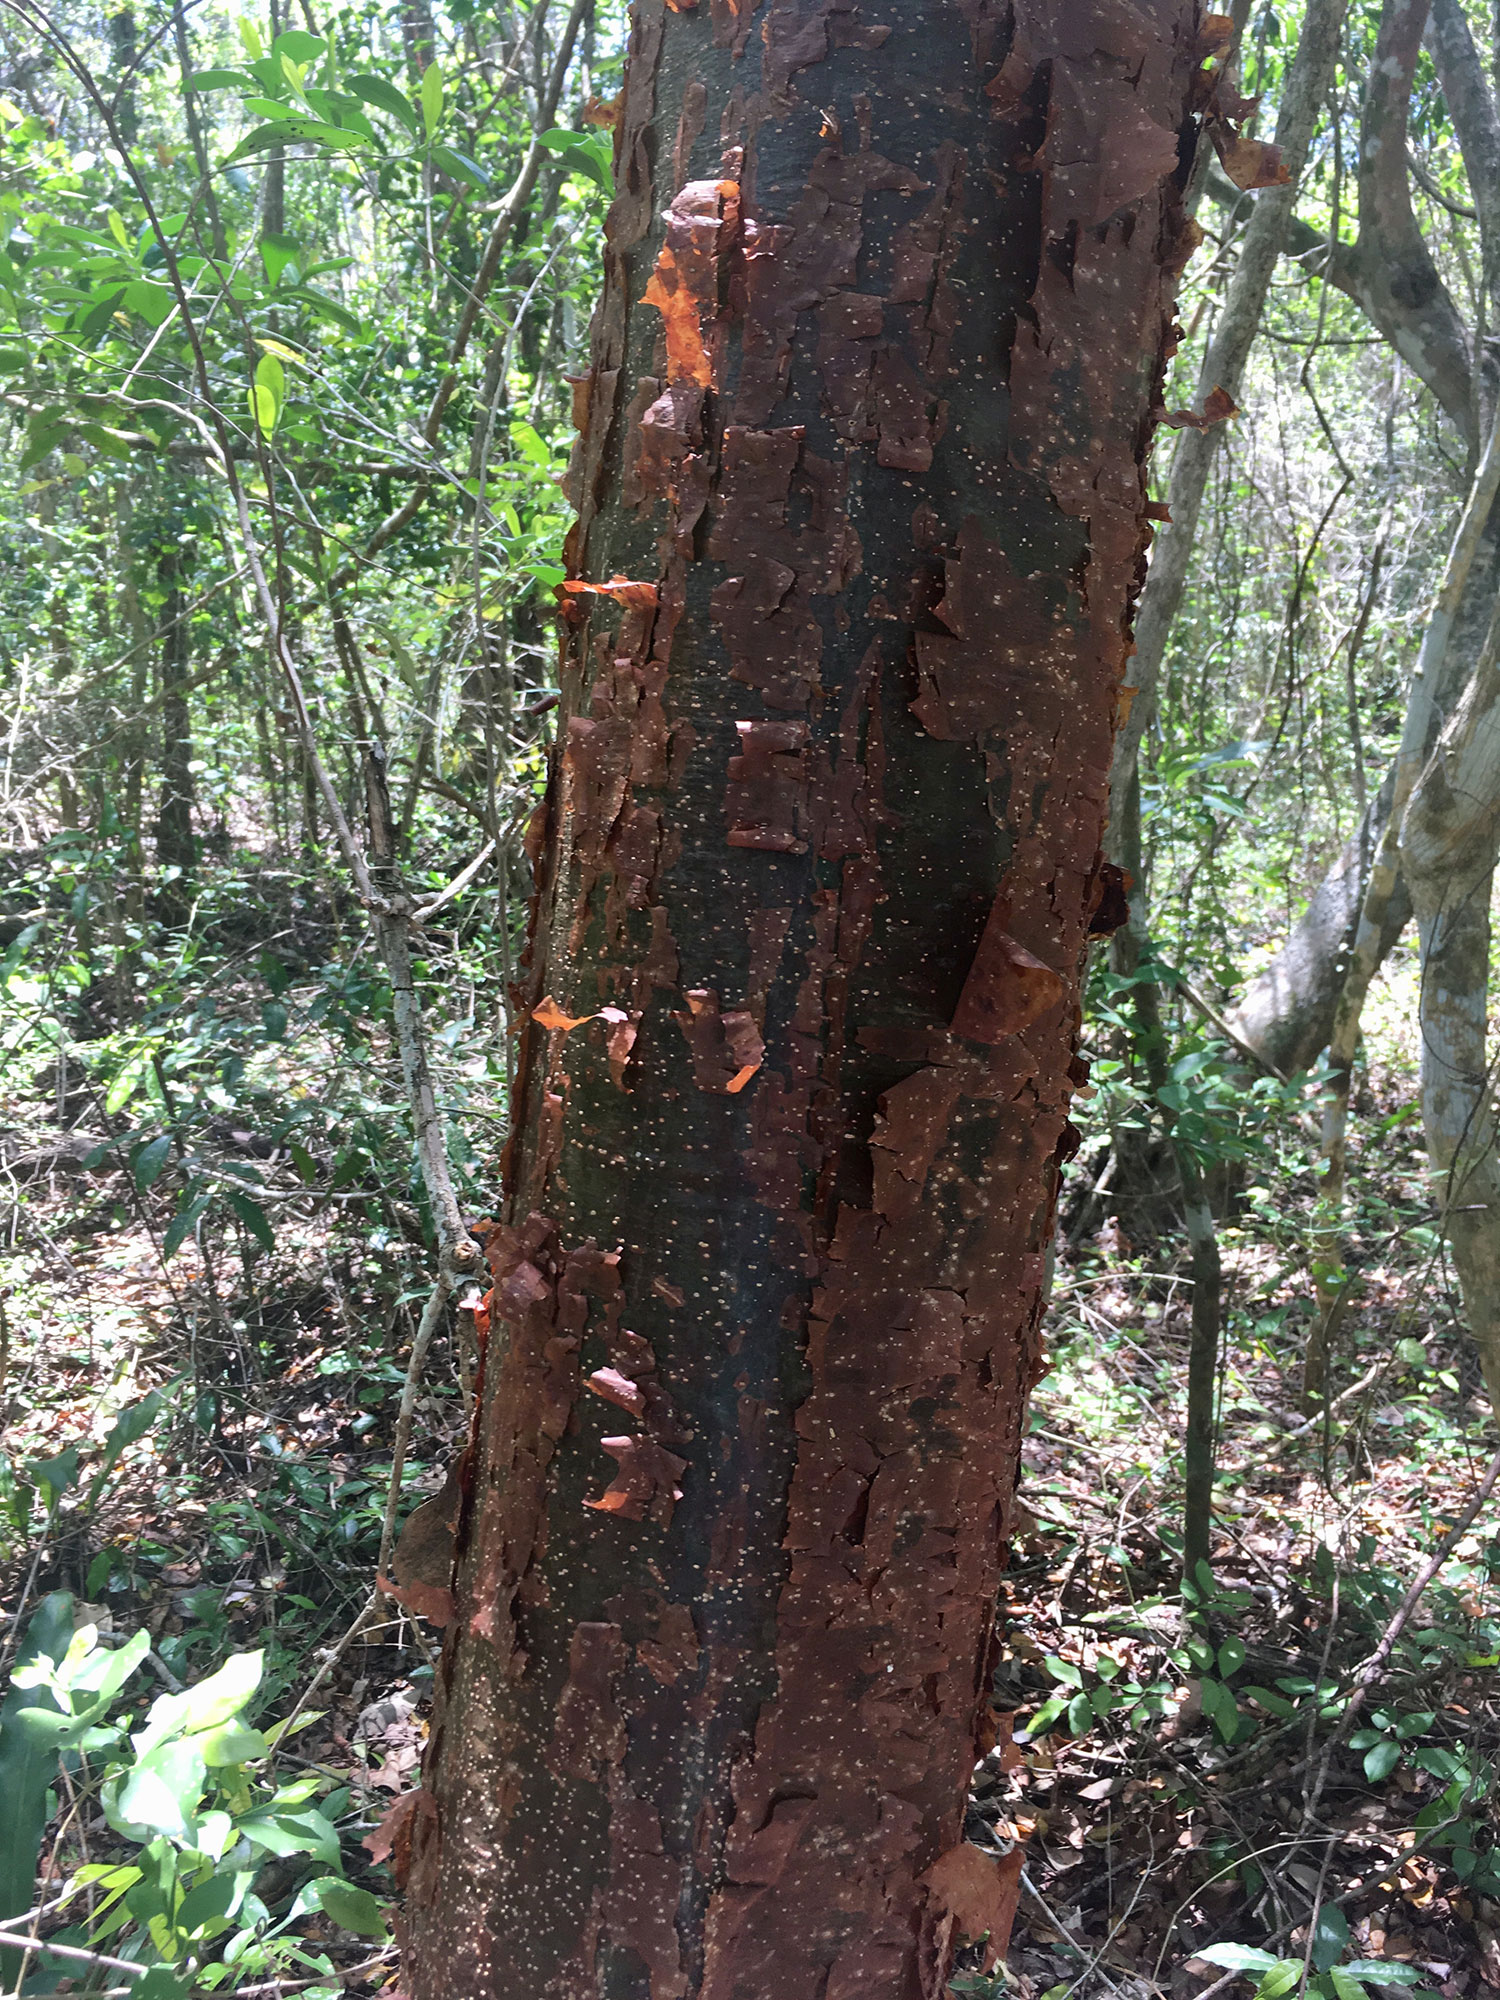 Gumbo Limbo (Chacá) tree has a copper peeling bark. The locals call them 'gringo trees' as they peel in the same way once sun-burnt.